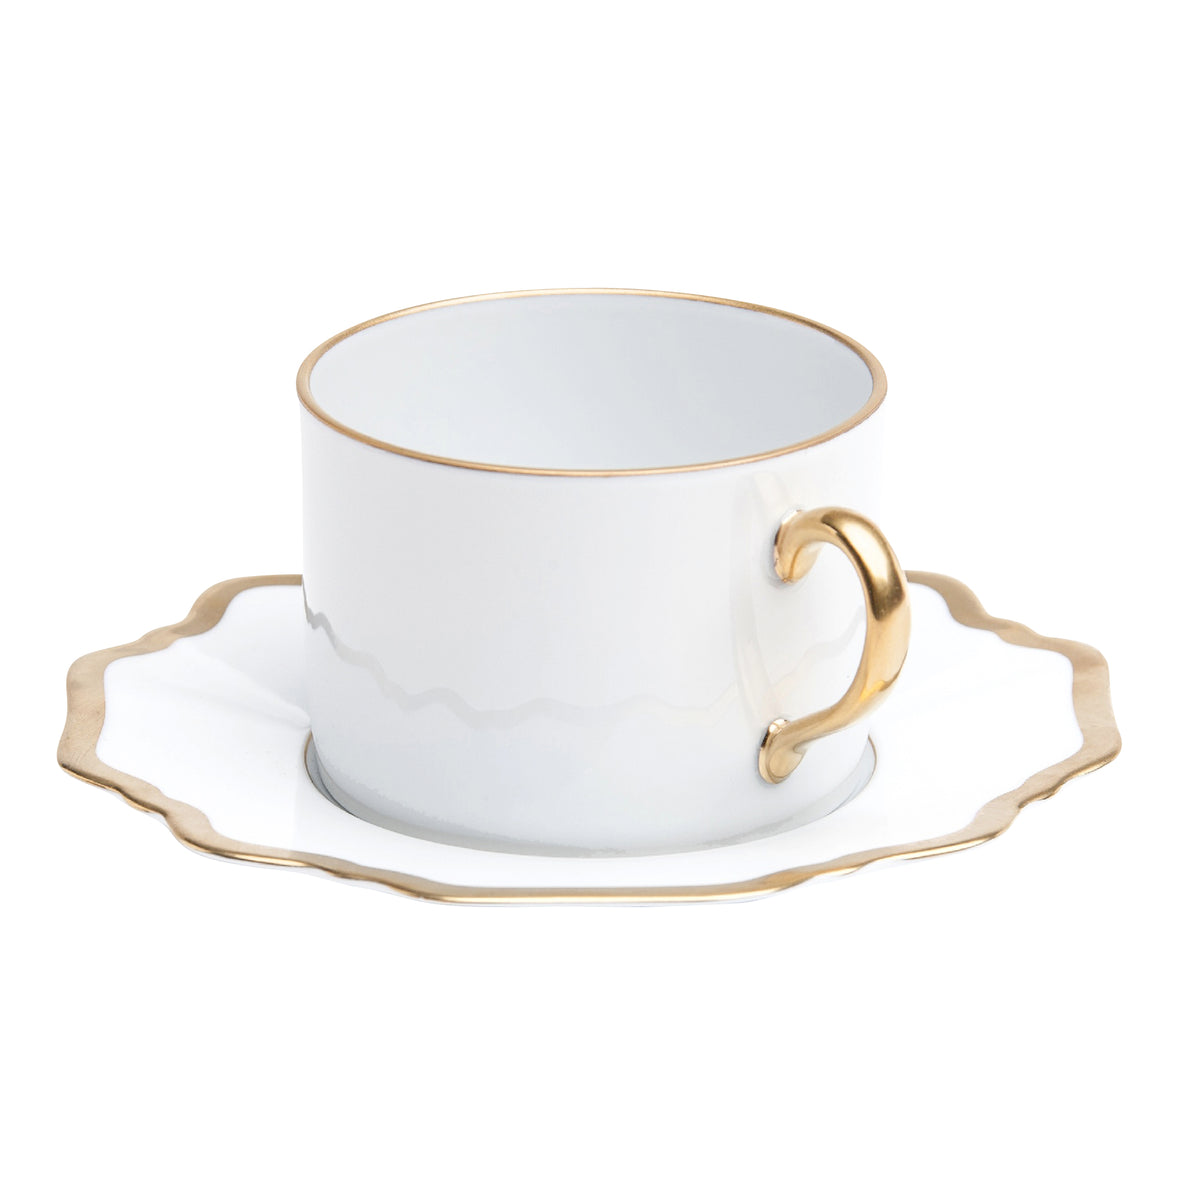 Antique White and Gold Tea Cup and Saucer